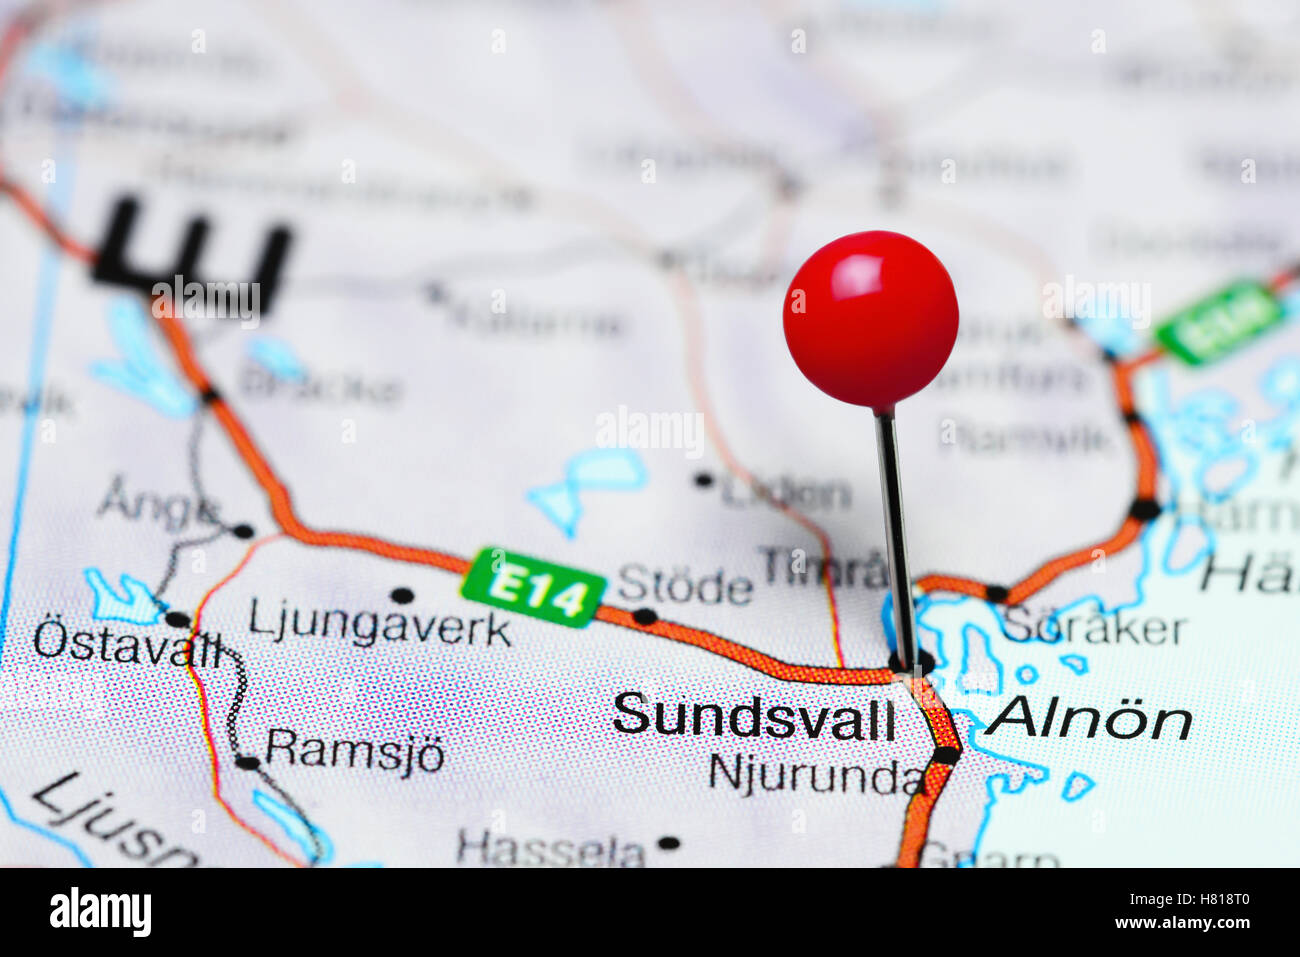 Sundsvall Pinned On A Map Of Sweden Stock Photo Royalty Free - Sweden map sundsvall